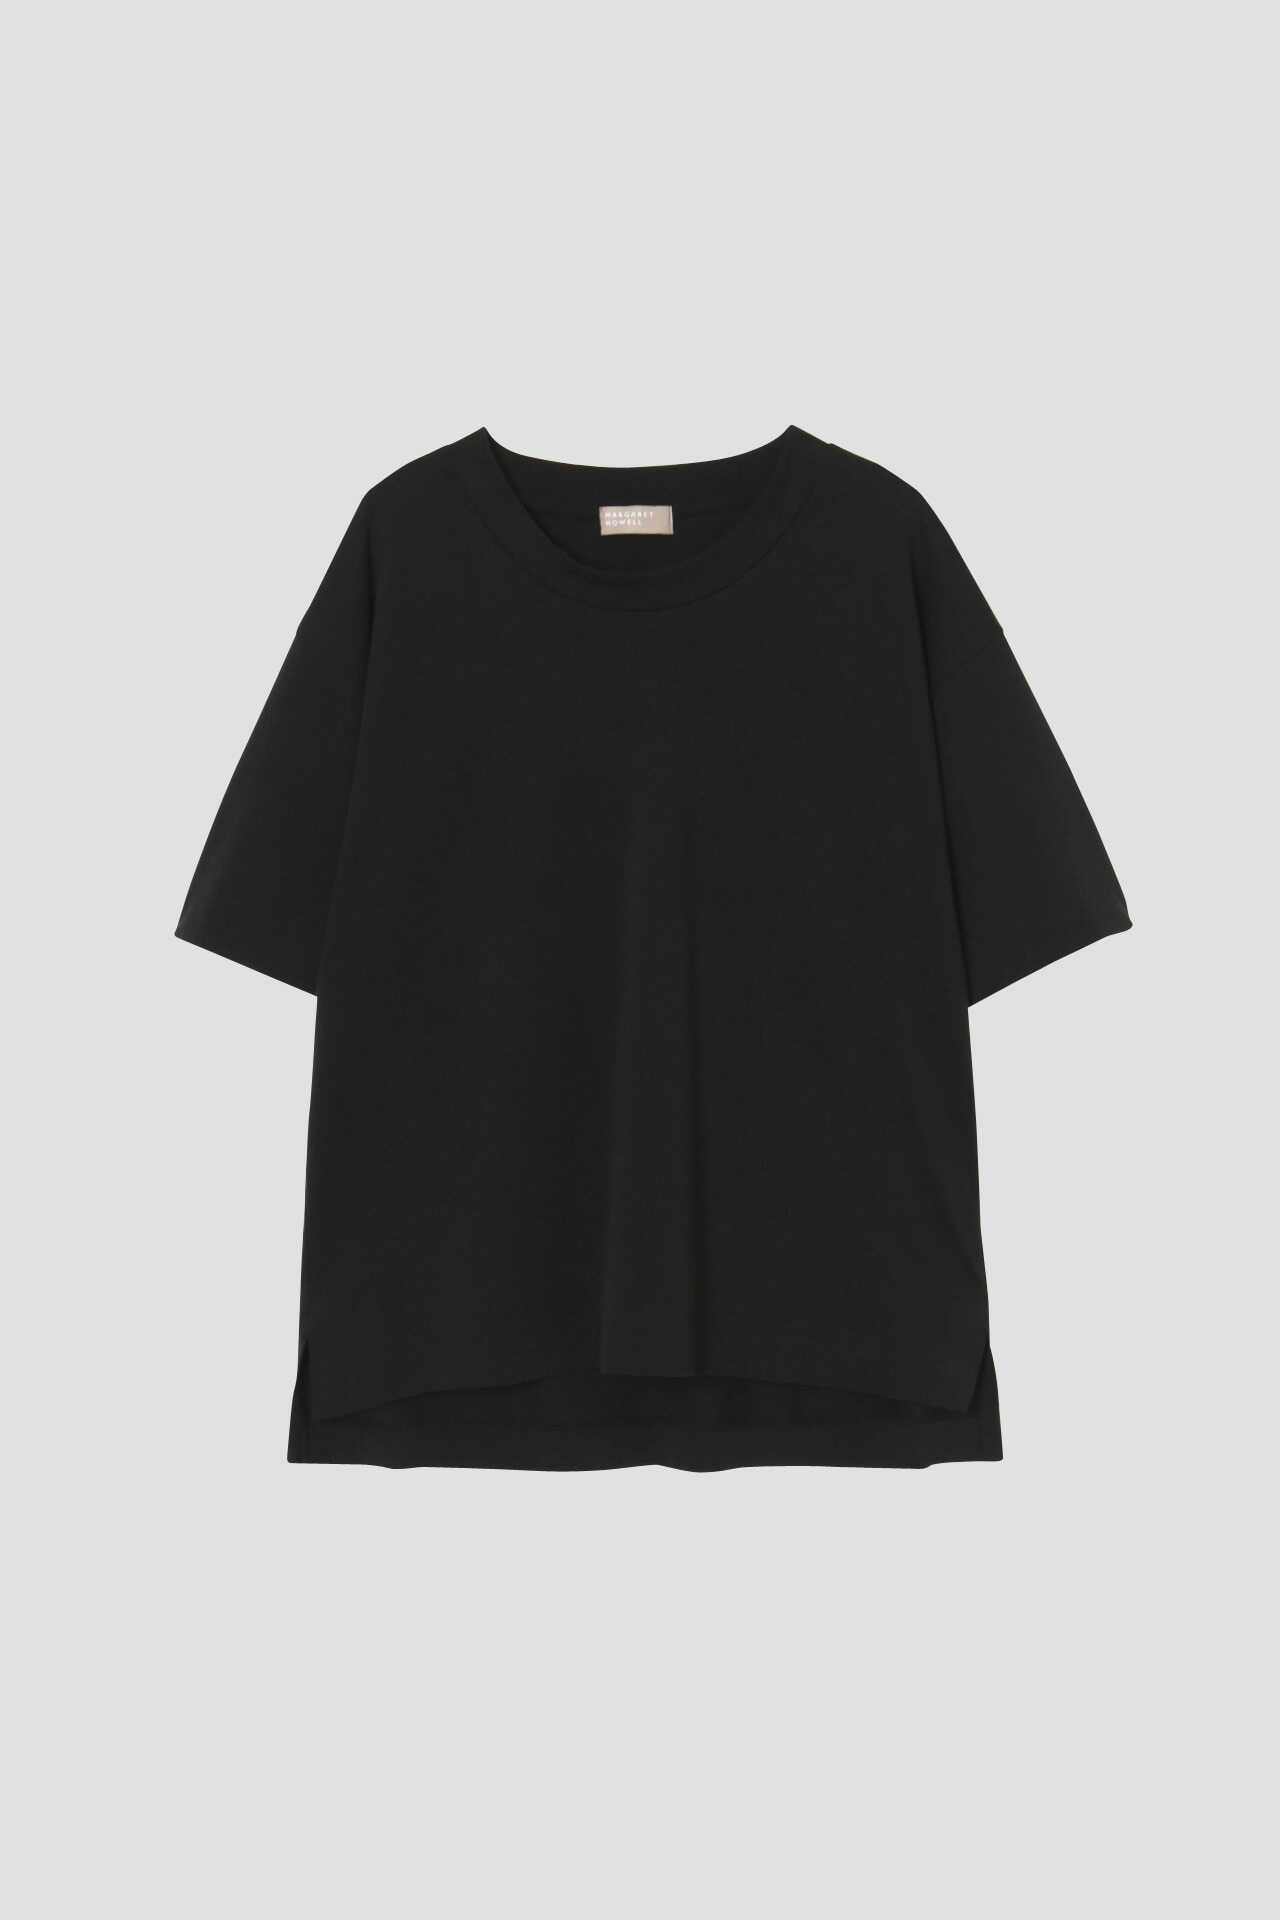 OVERSIZED COTTON T SHIRT6